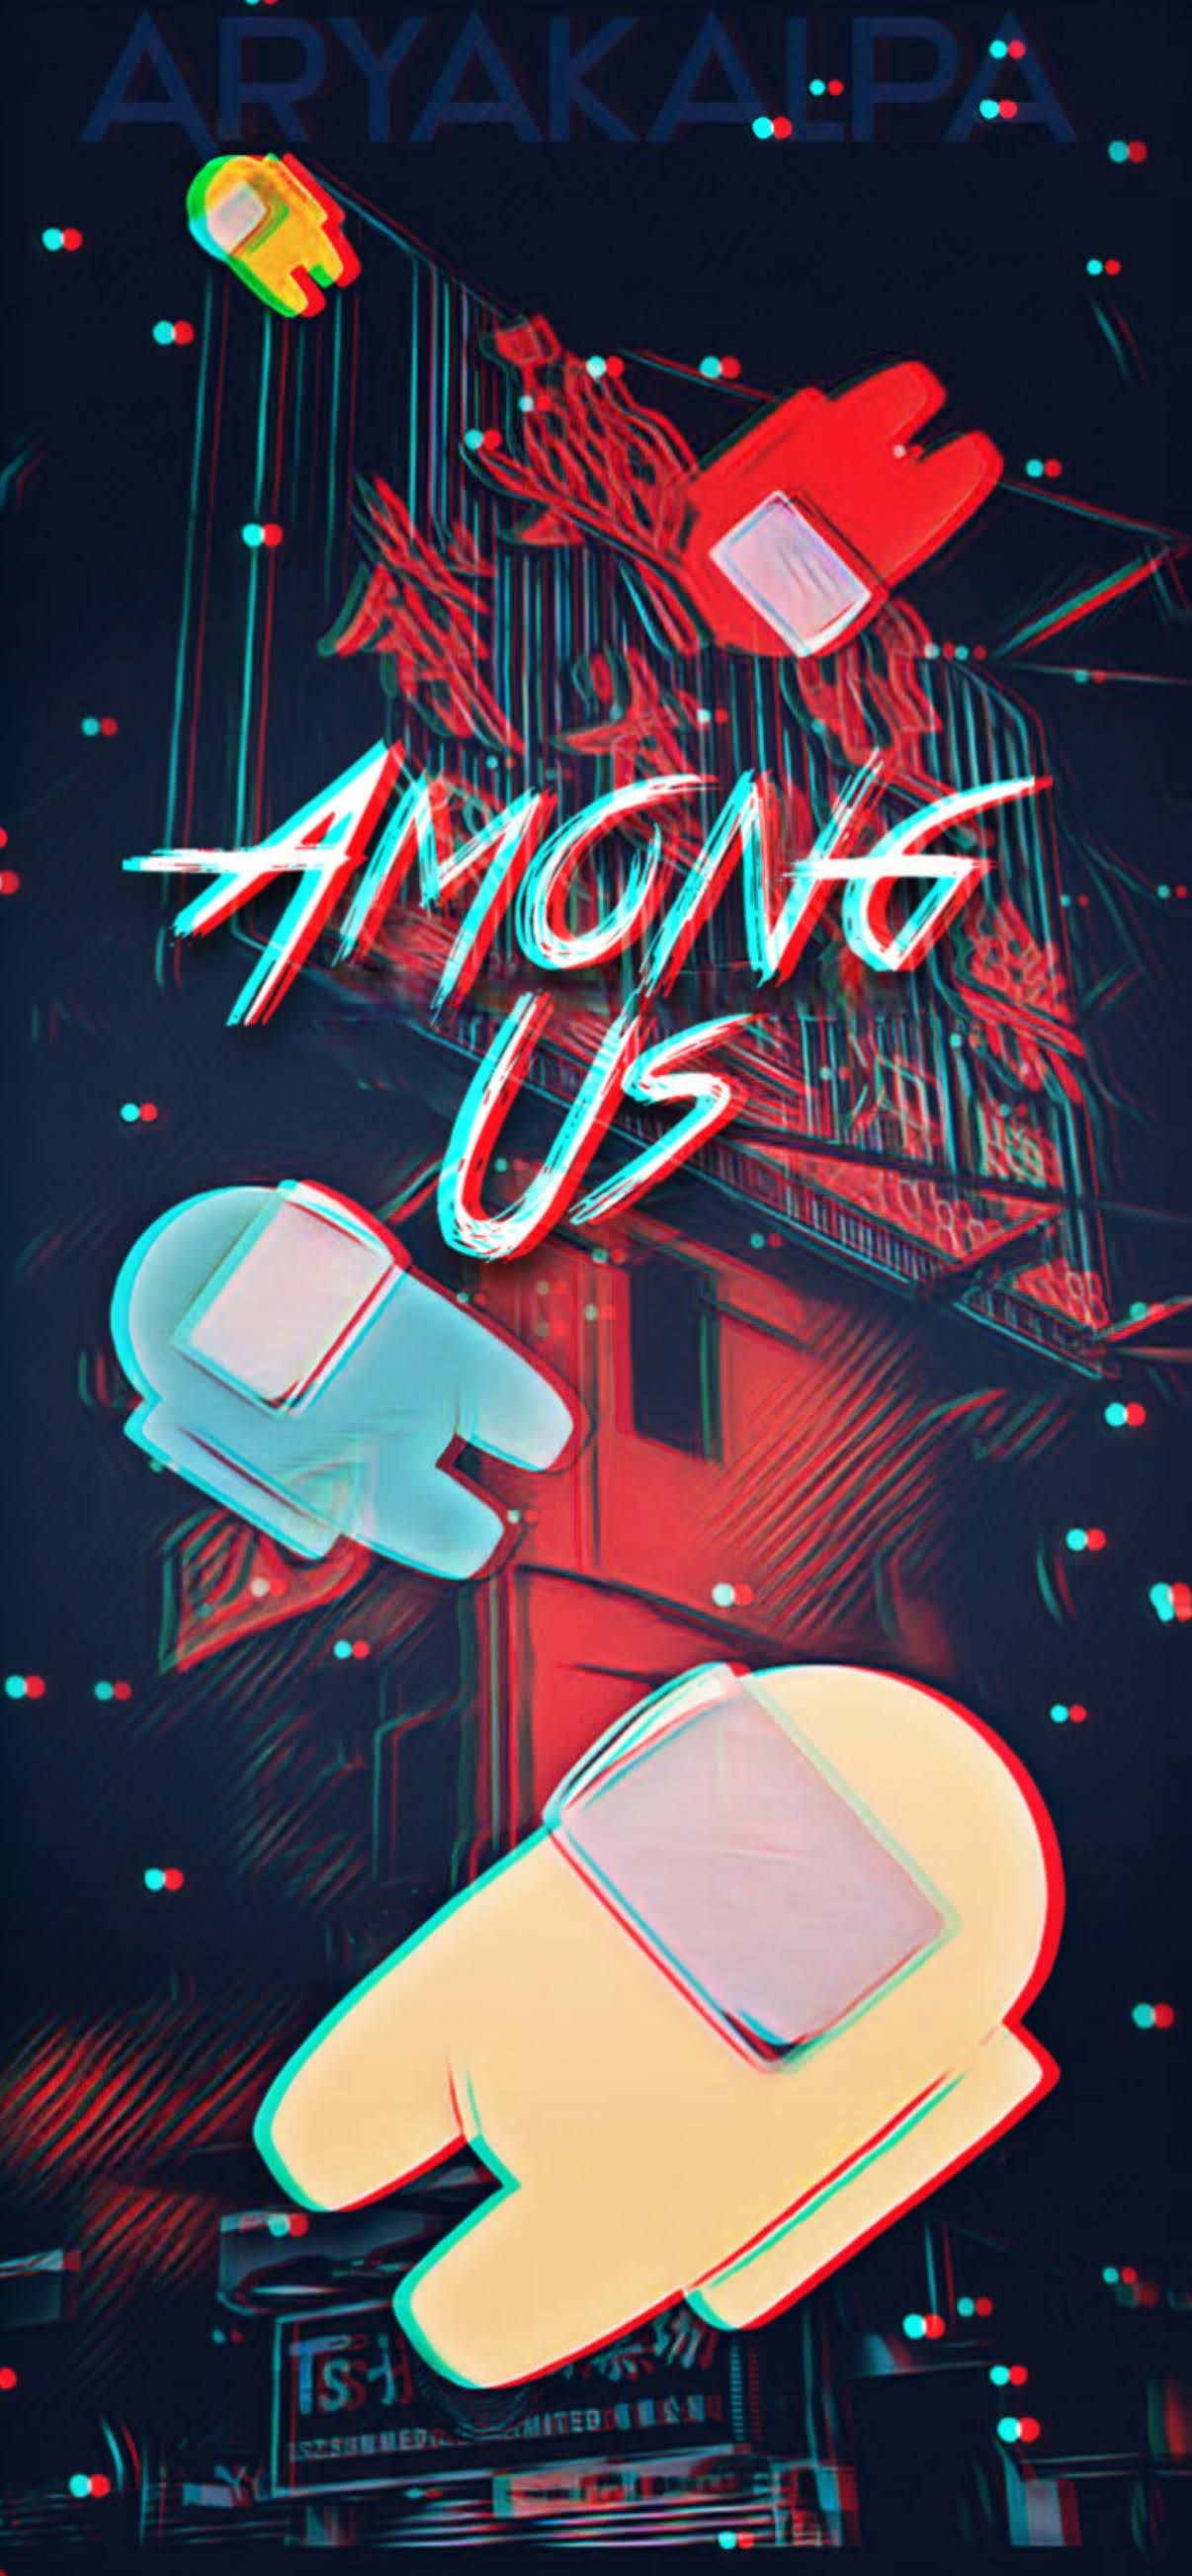 among us impostor background game wallpaper for mobile phone iphone